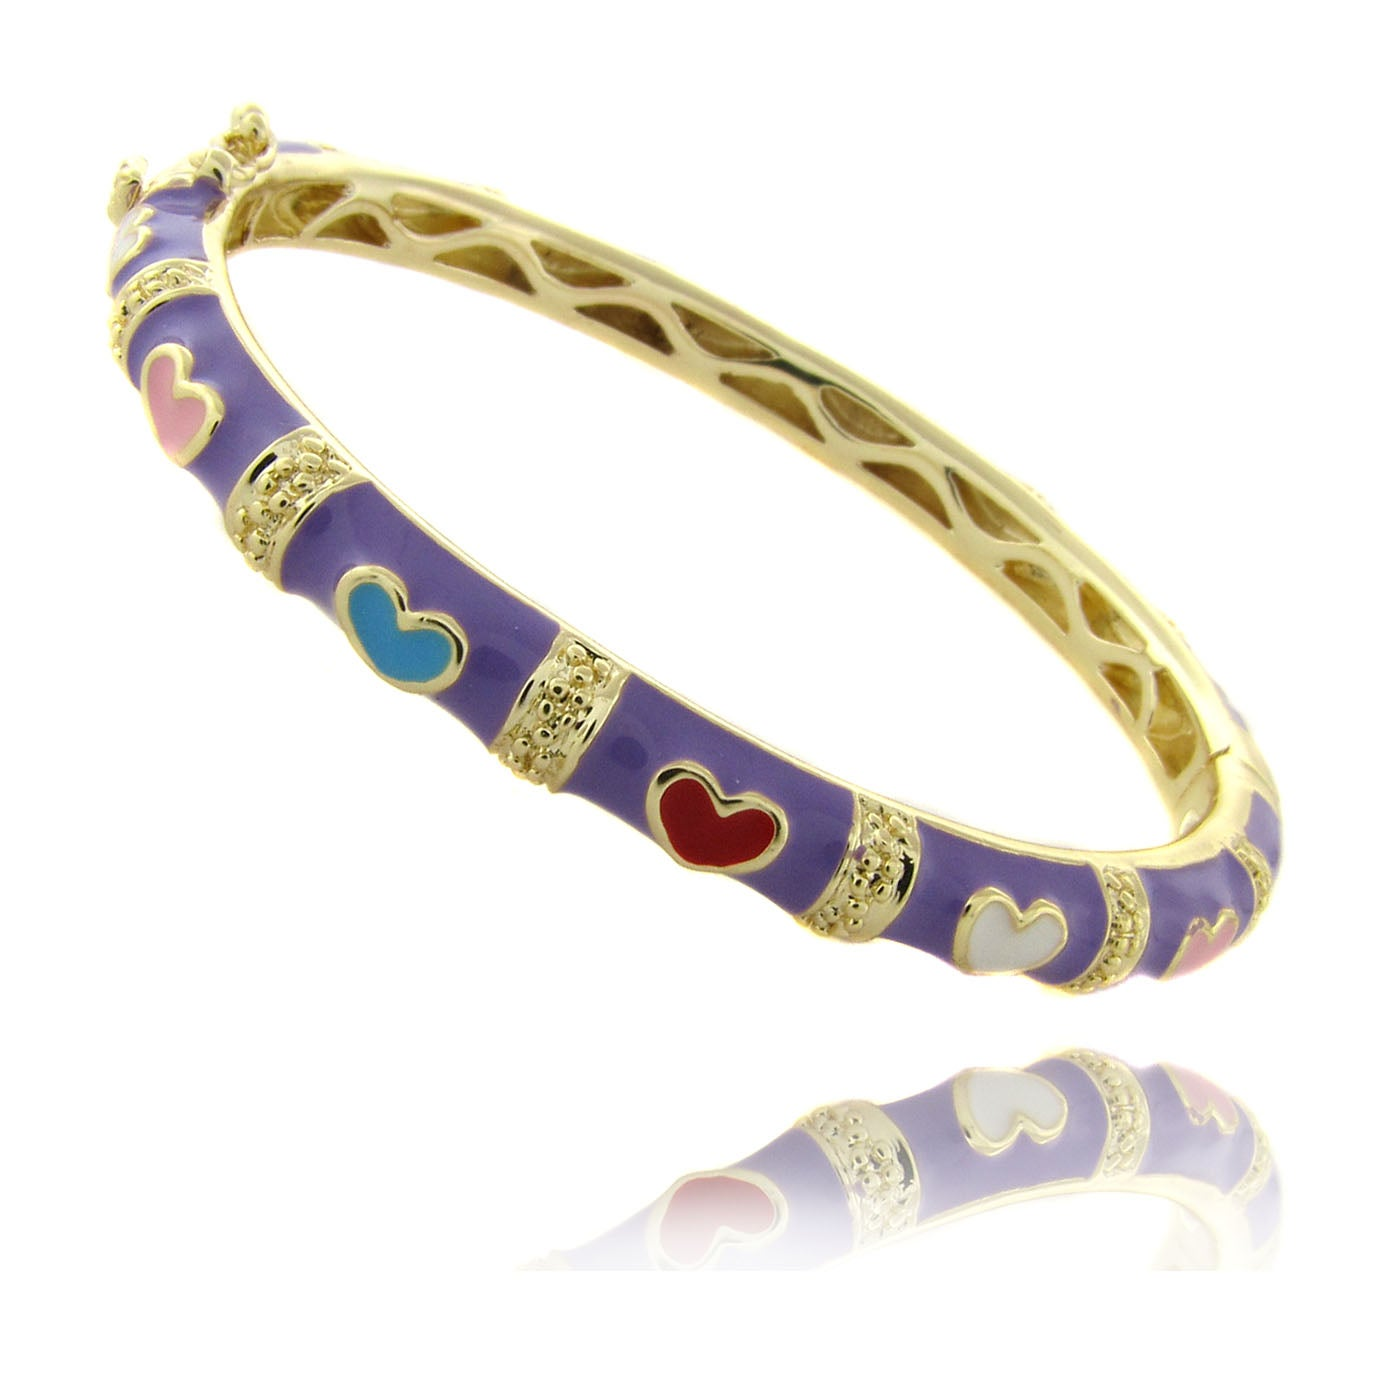 Molly And Emma 14k Gold Overlay Children S Lavender Enamel Heart Design Bangle Bracelet